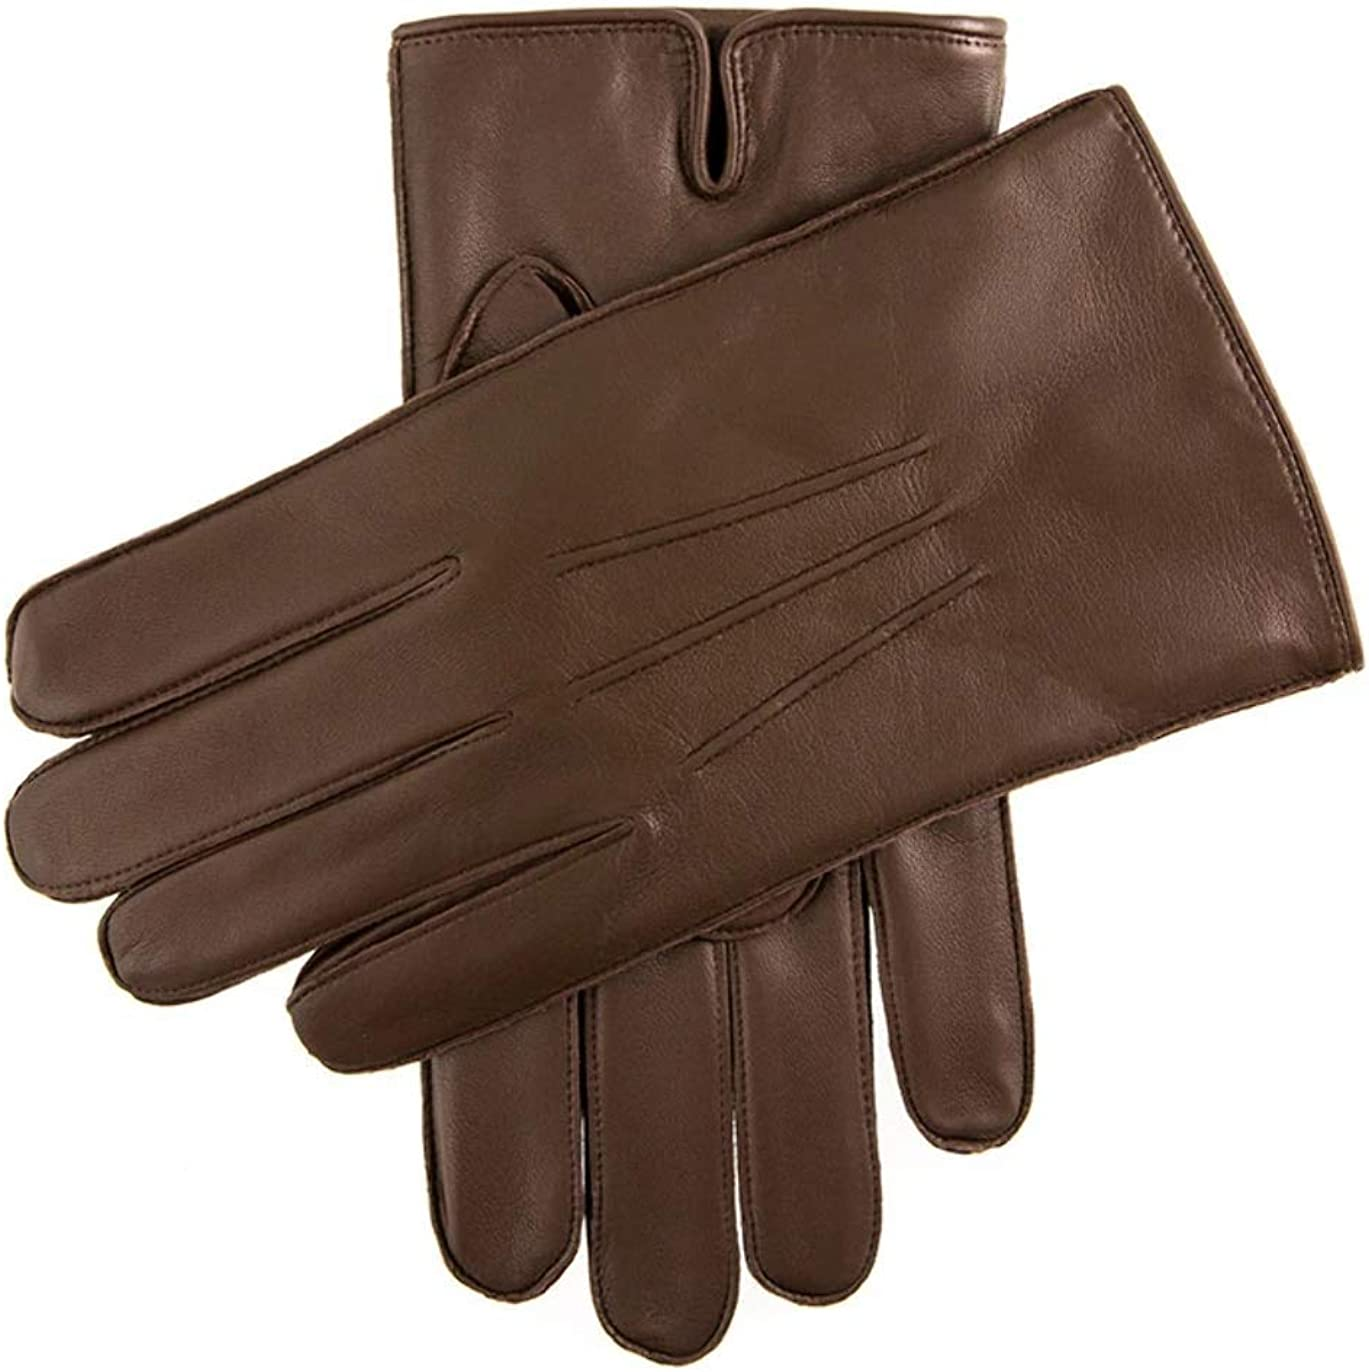 Selling Dents Hastings Fleece Lined 2021 Leather Gloves Hairsheep